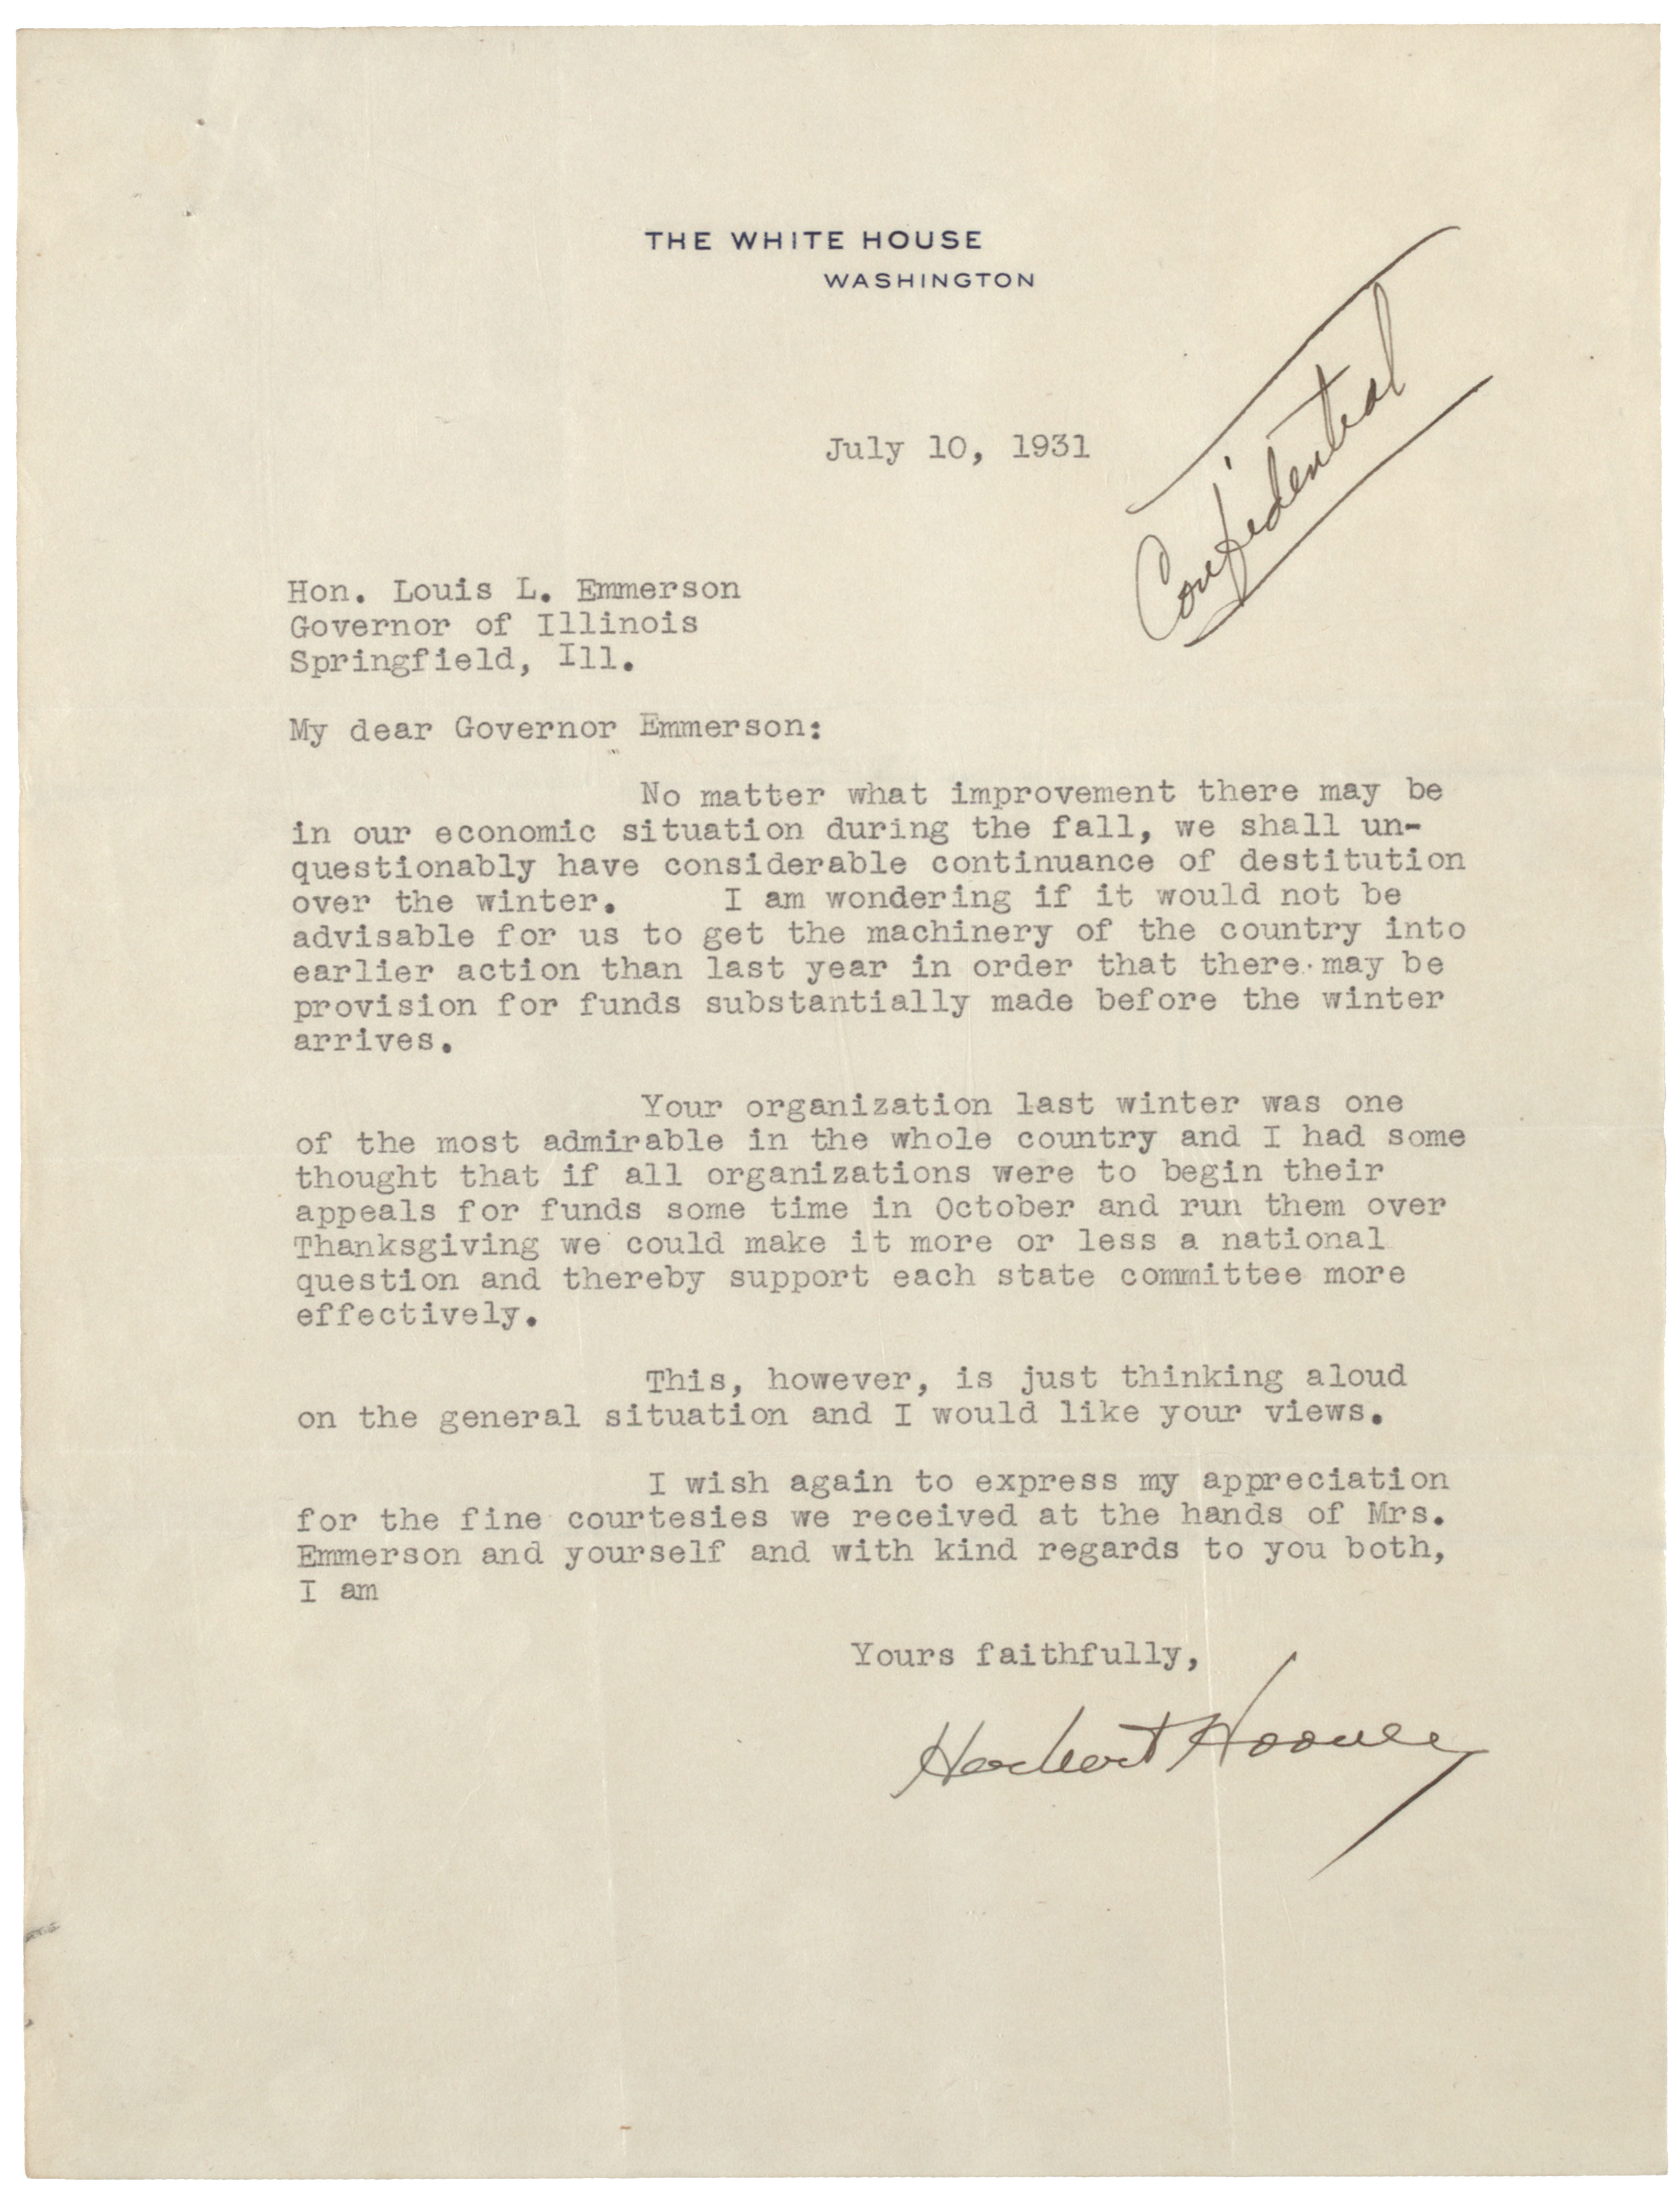 Herbert Hoover to Louis L. Emmerson, July 10, 1931. (Gilder Lehrman Collection)